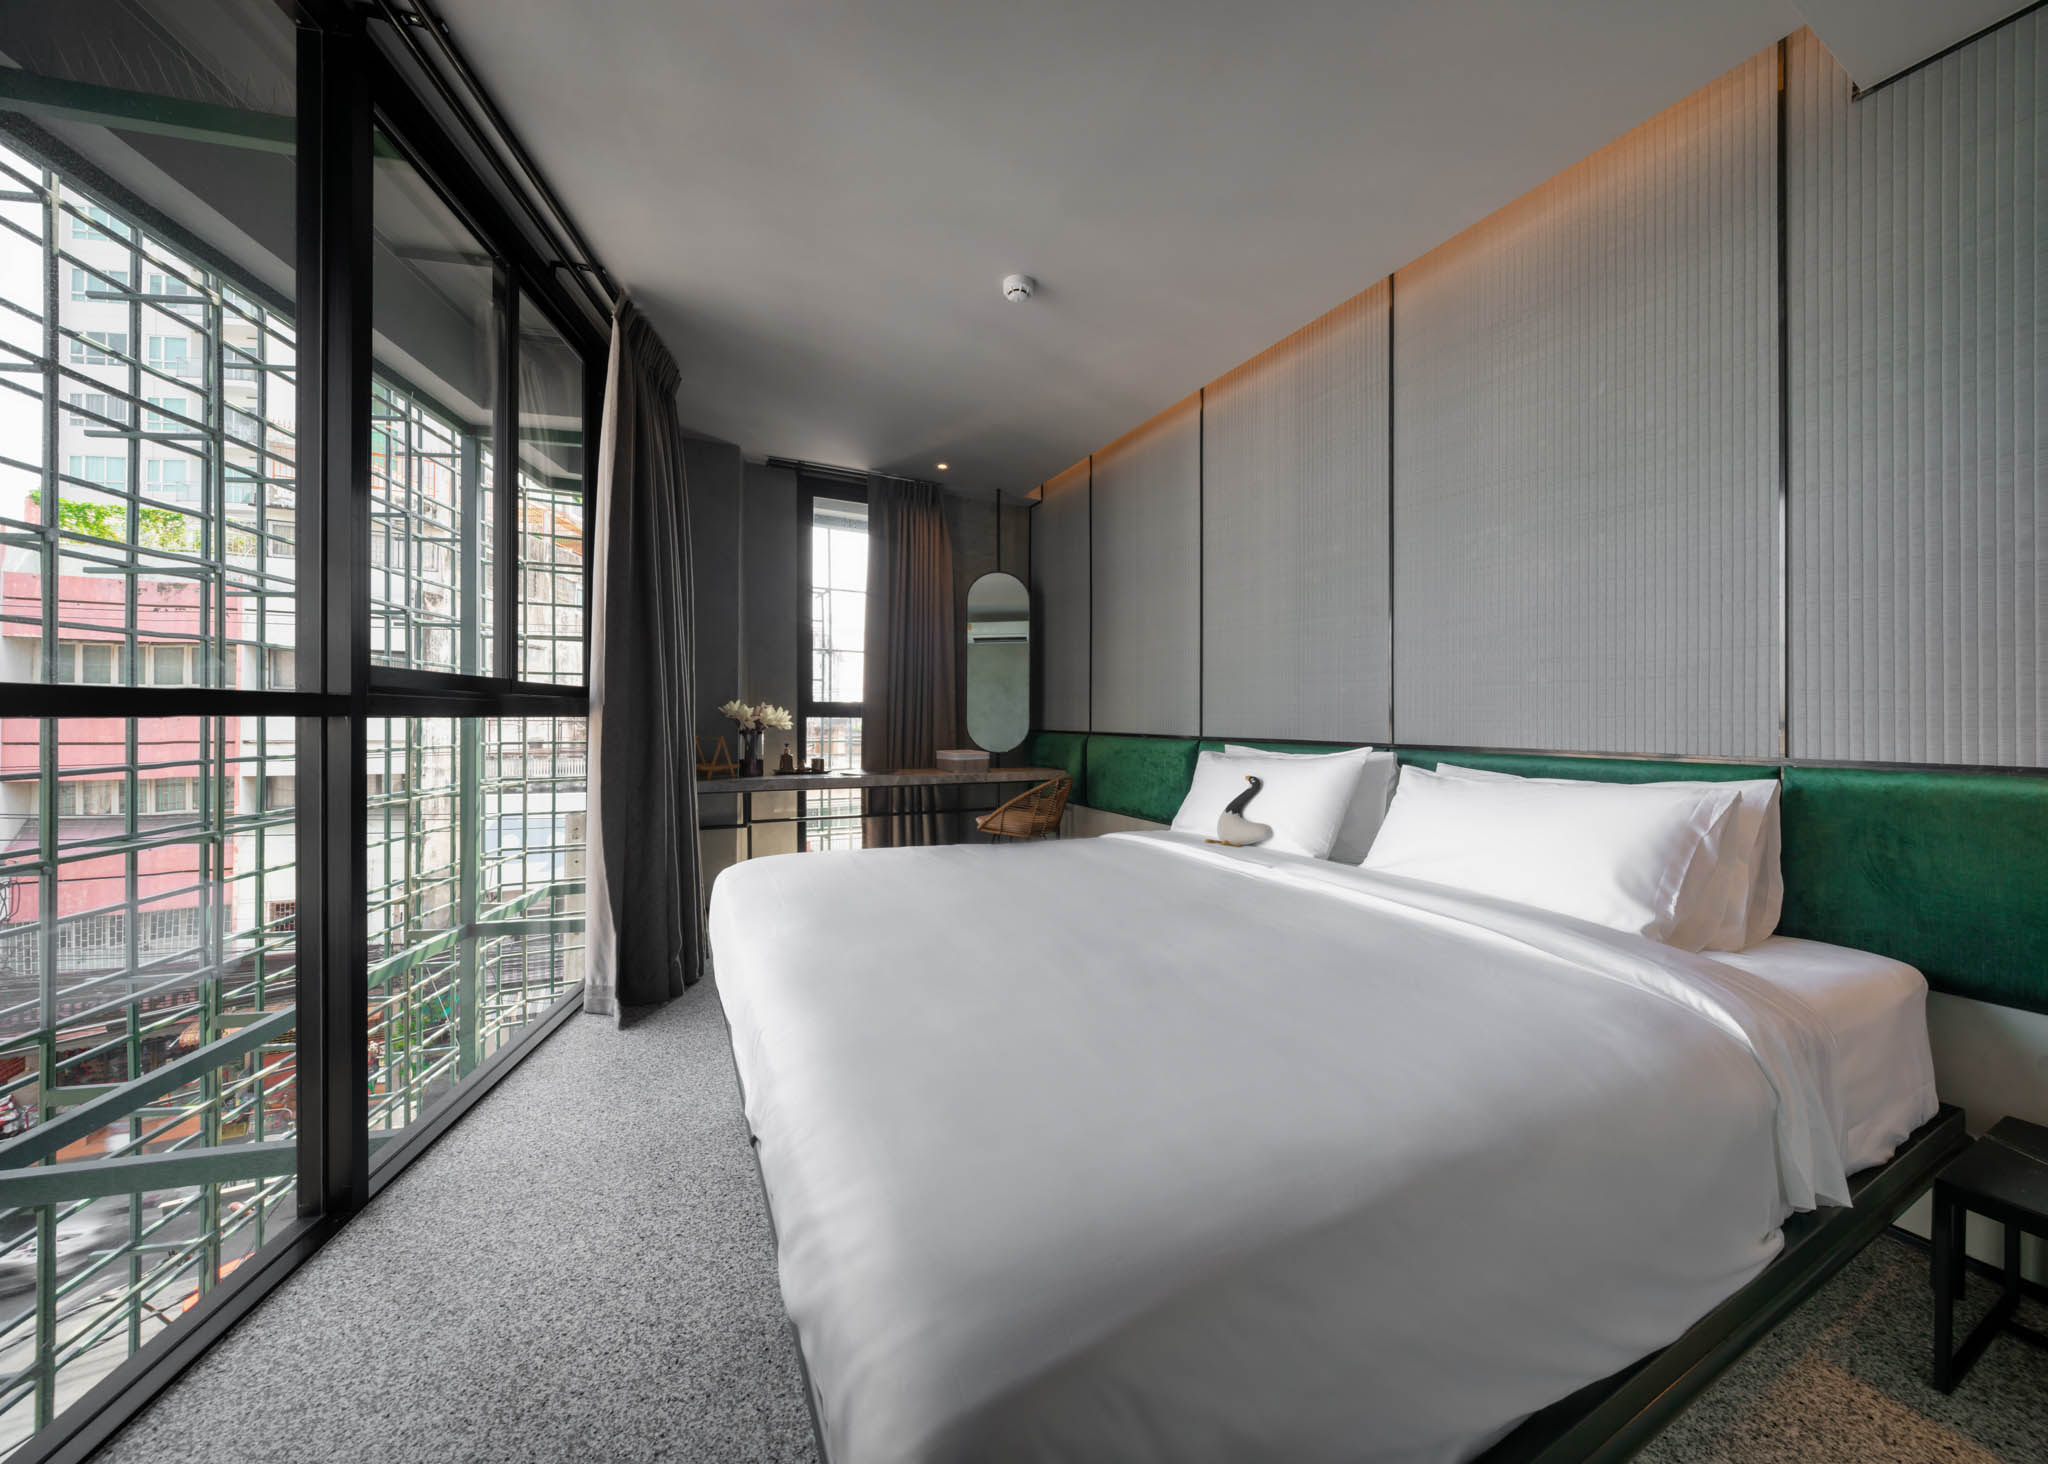 Goose Living From Row Houses to Charming Boutique Hotel